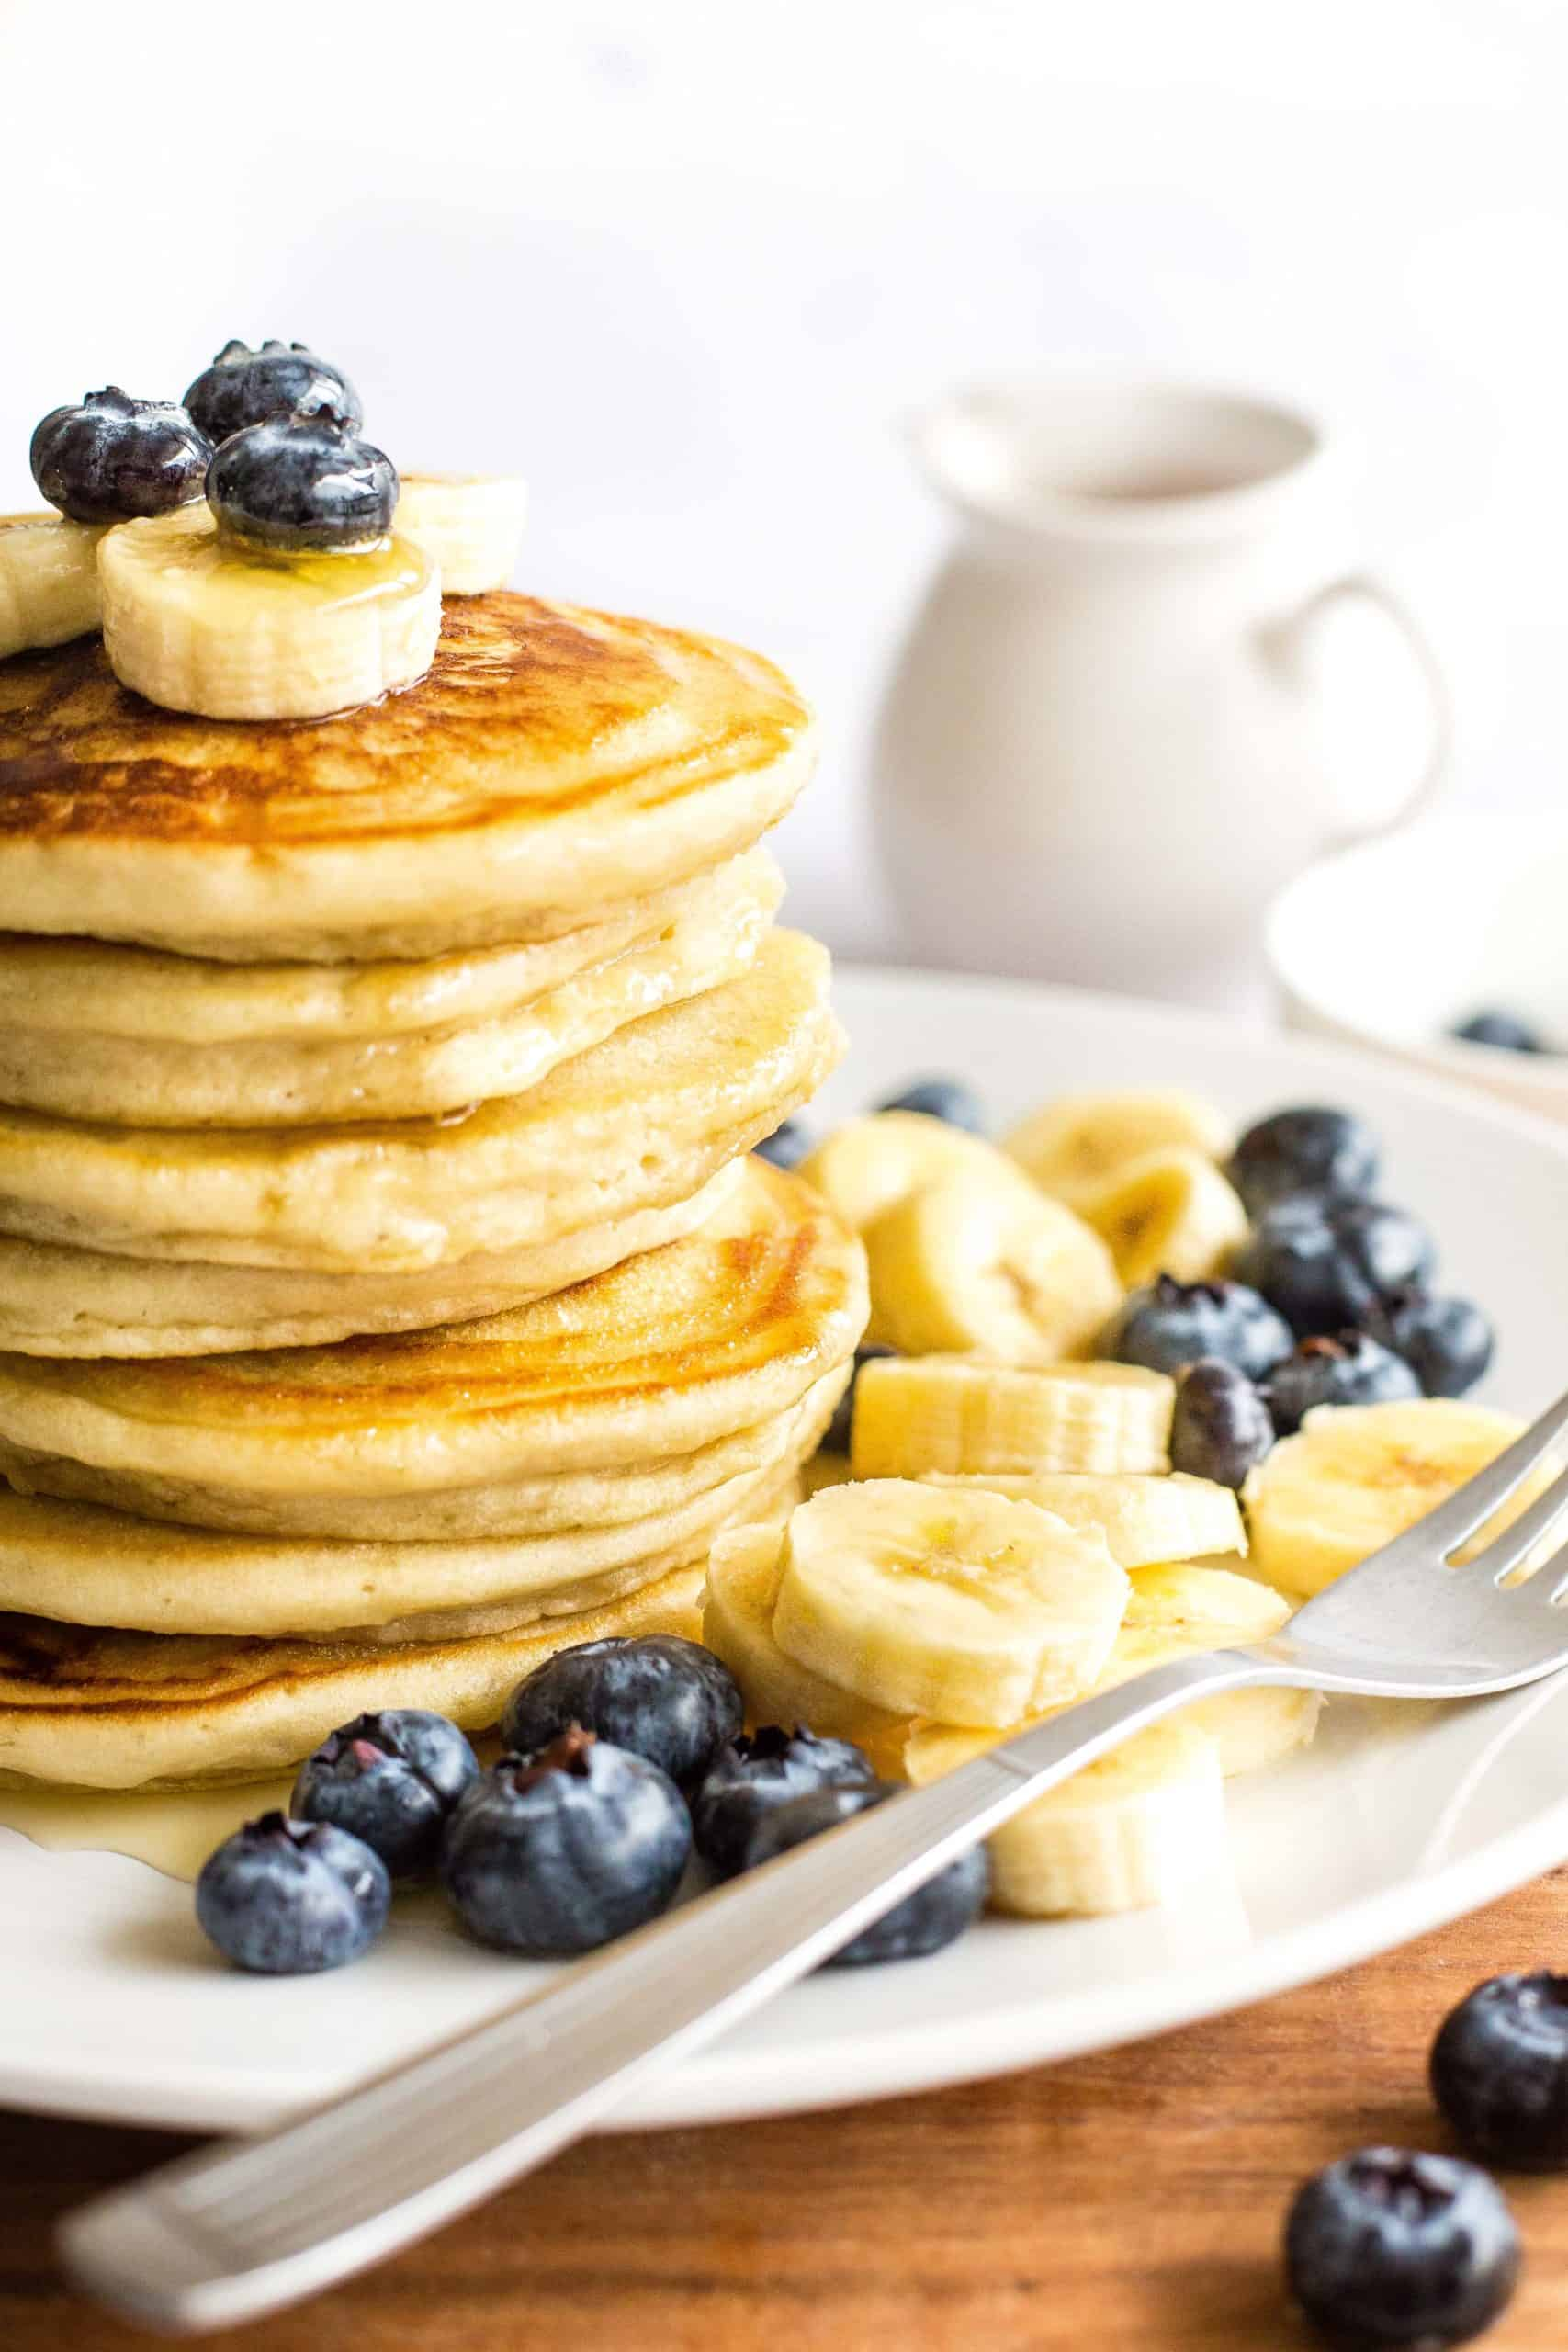 A tall stack of fluffy gluten-free pancakes topped with fruit and drizzled in maple syrup.